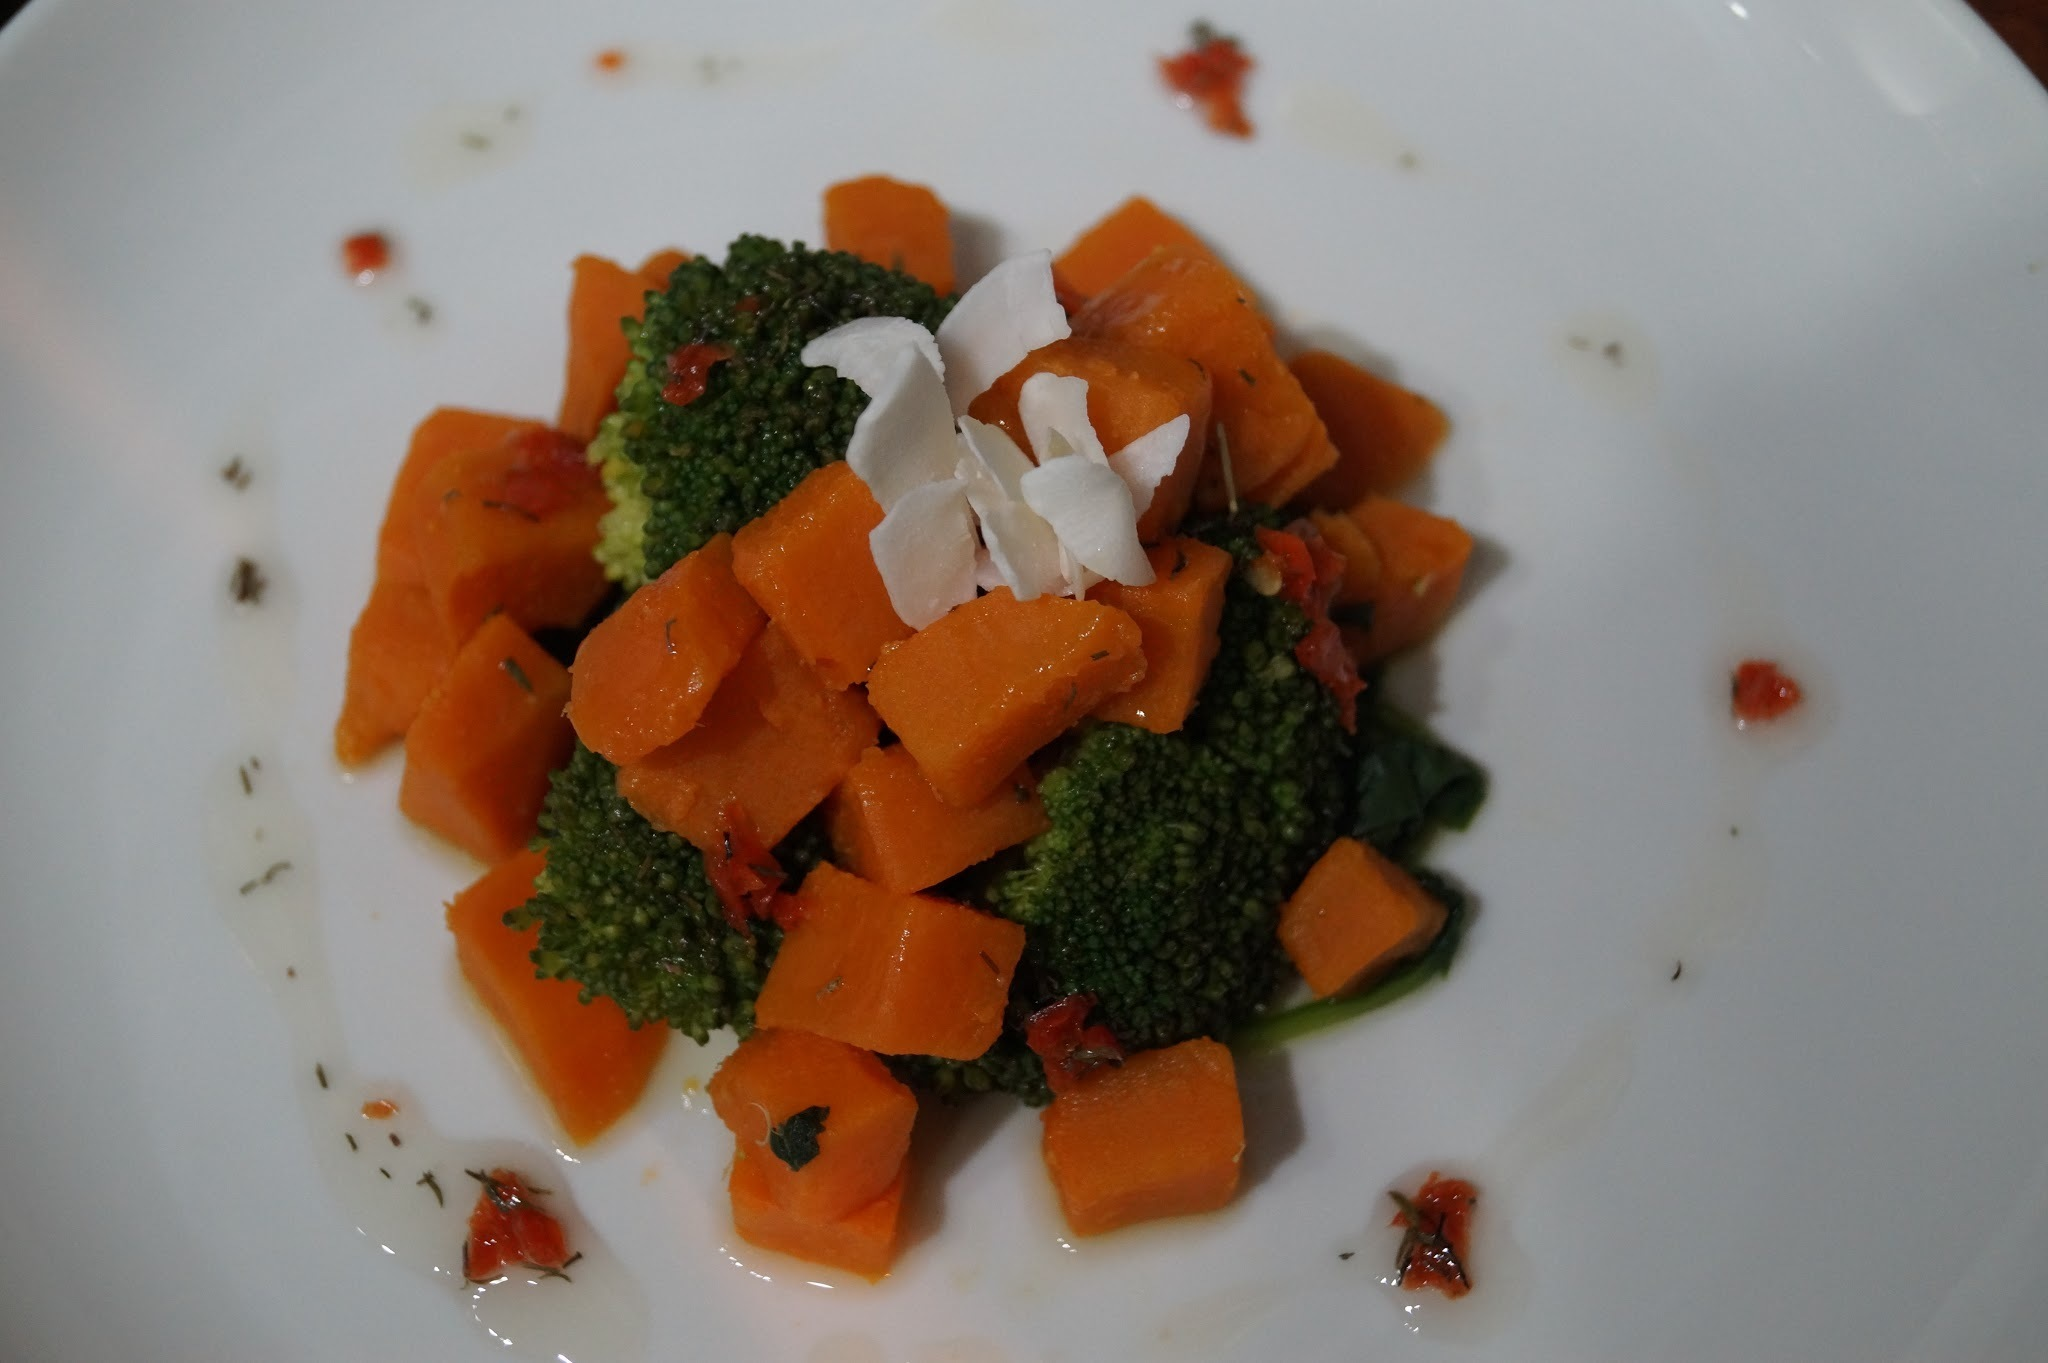 BROCCOLI, SPINACH AND SWEET POTATO SALAD WITH CHILLI COCONUT DRESSING